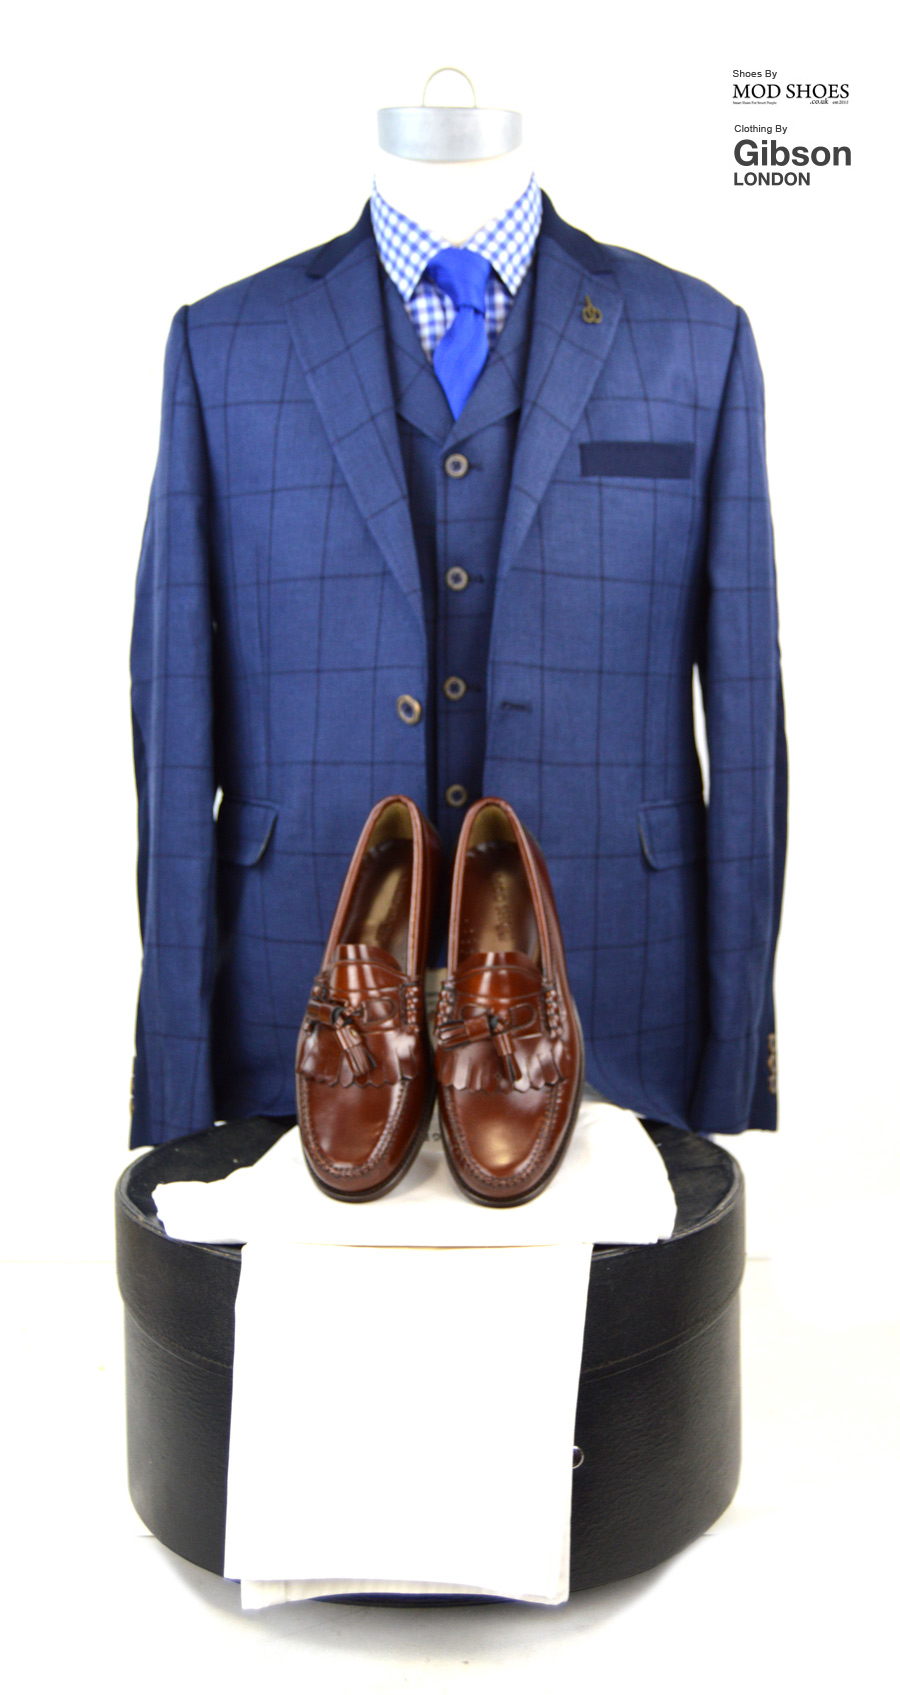 modshoes-with-chestnut-dukes-with-gibson-jacket